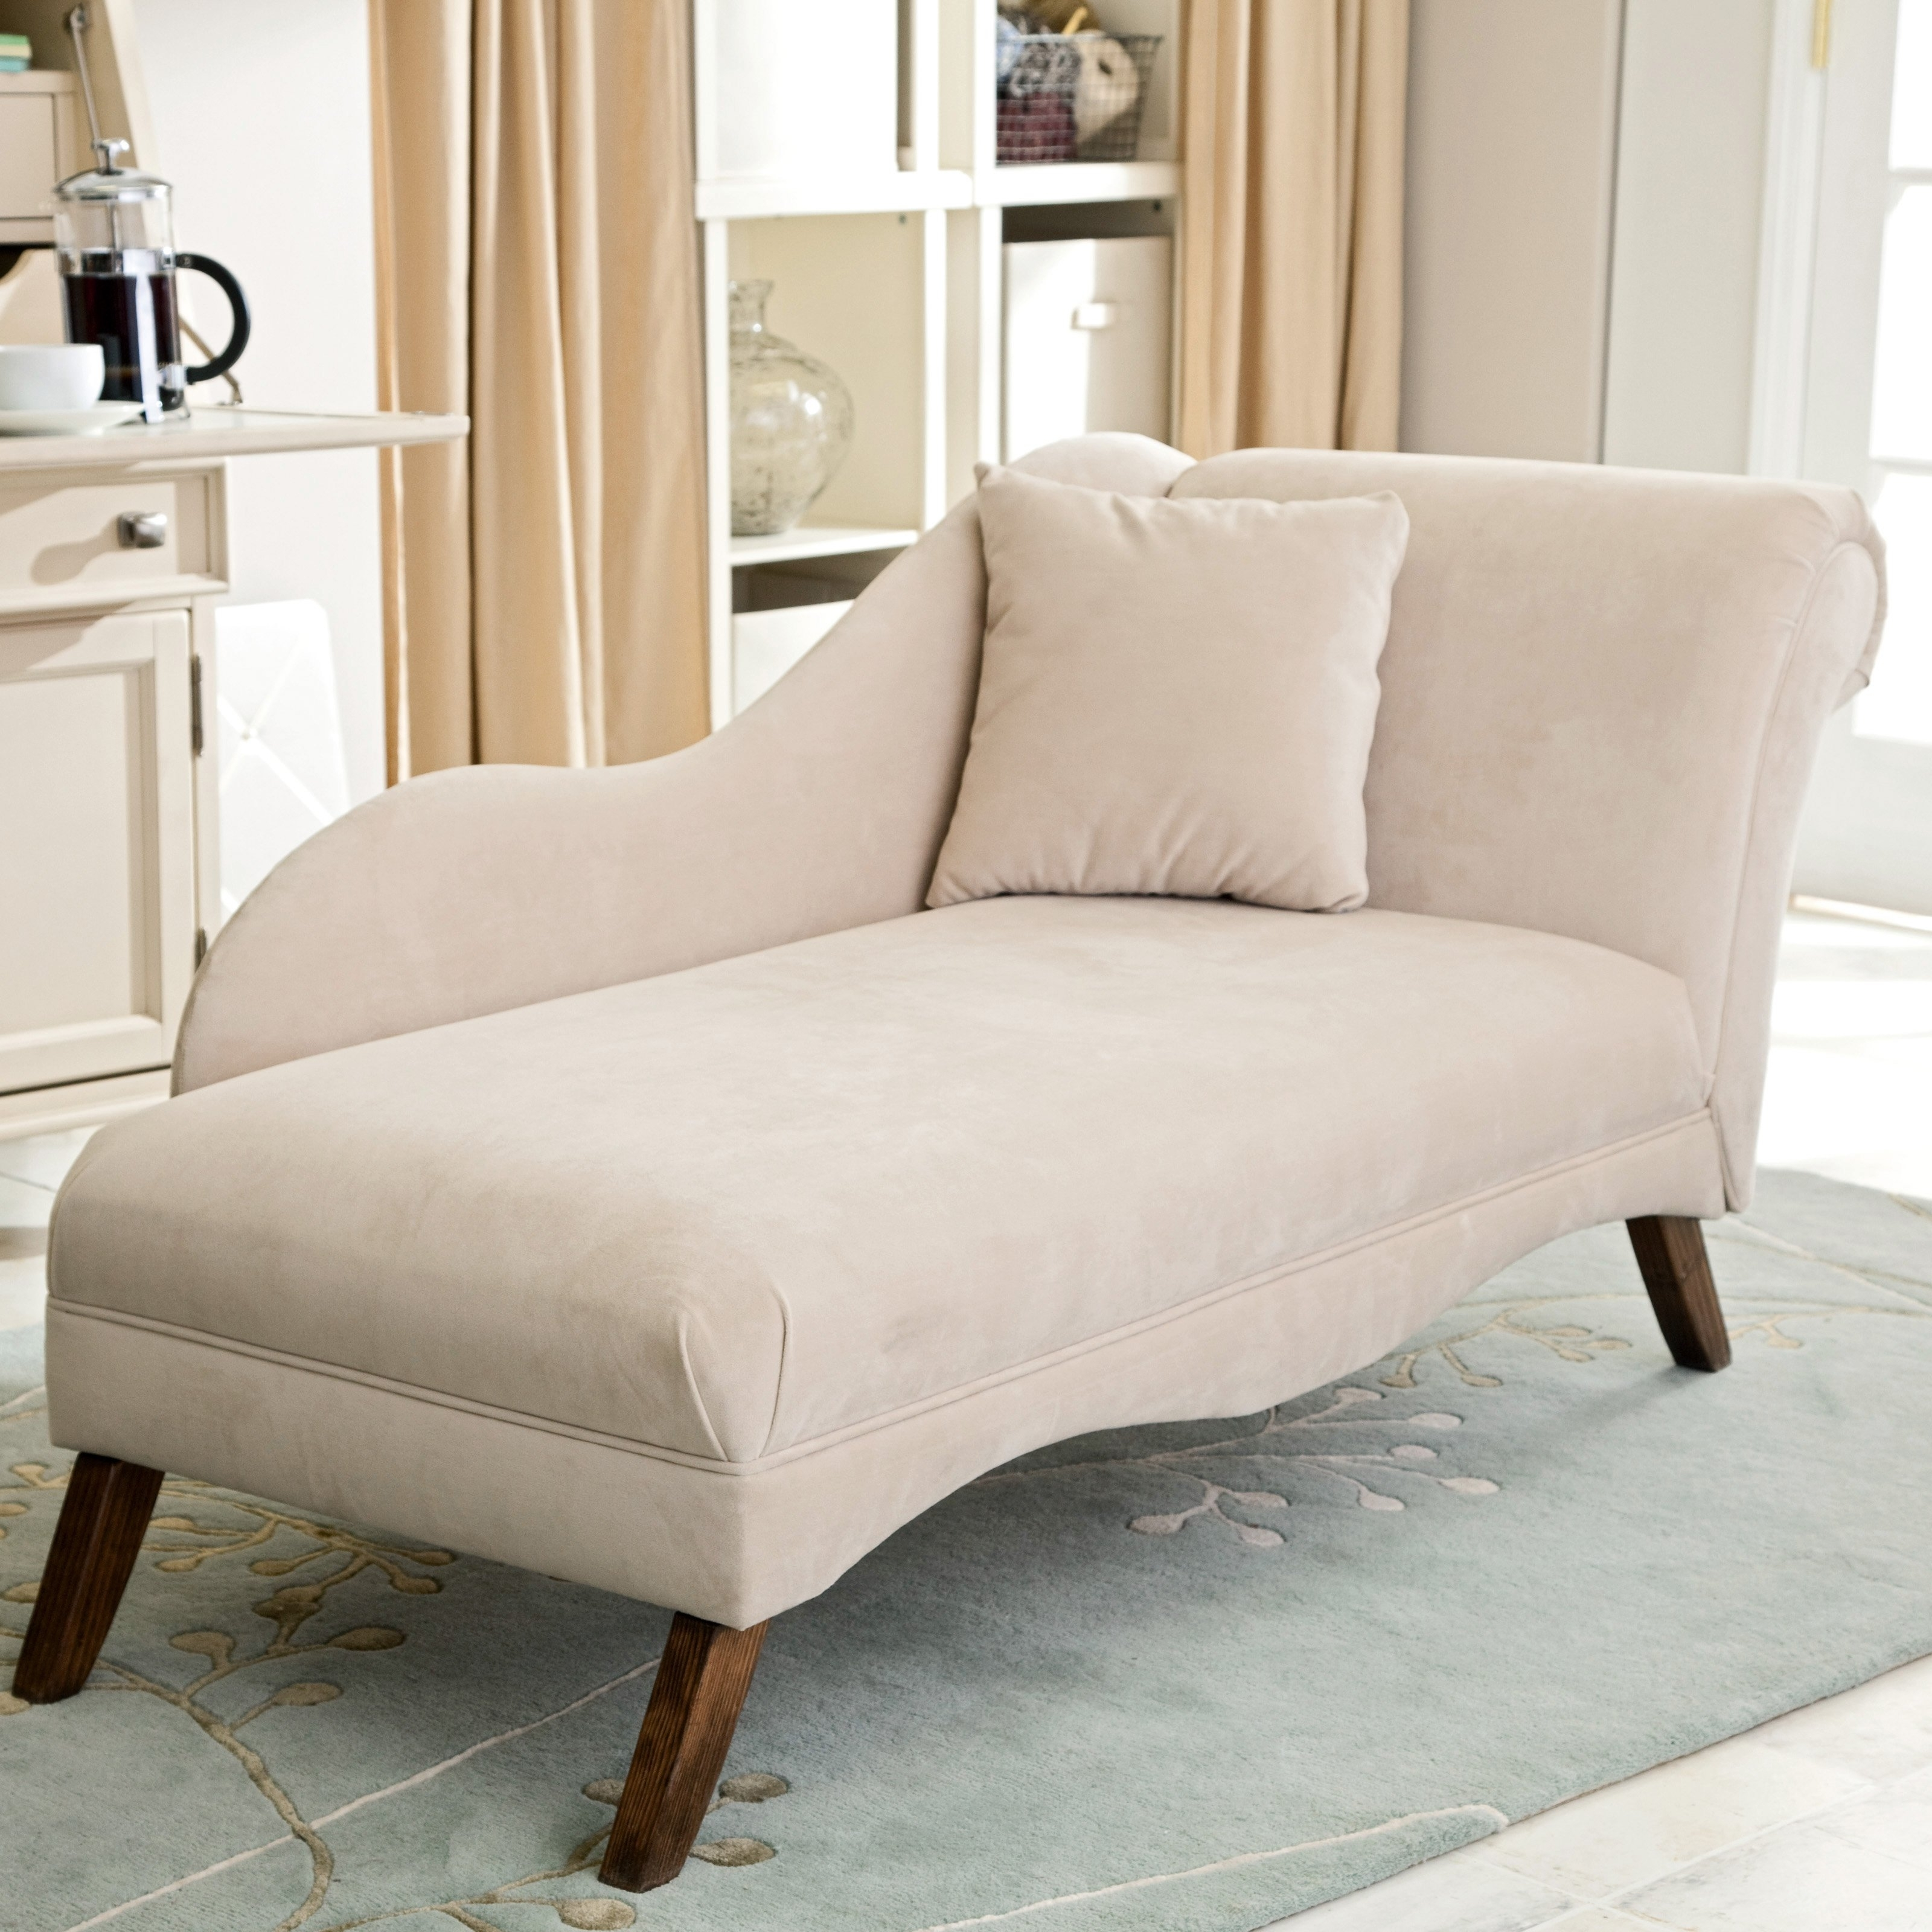 Chaise Lounge Chair – Symbol Of Style And Practicality Within Most Popular Chaise Chairs (View 7 of 15)